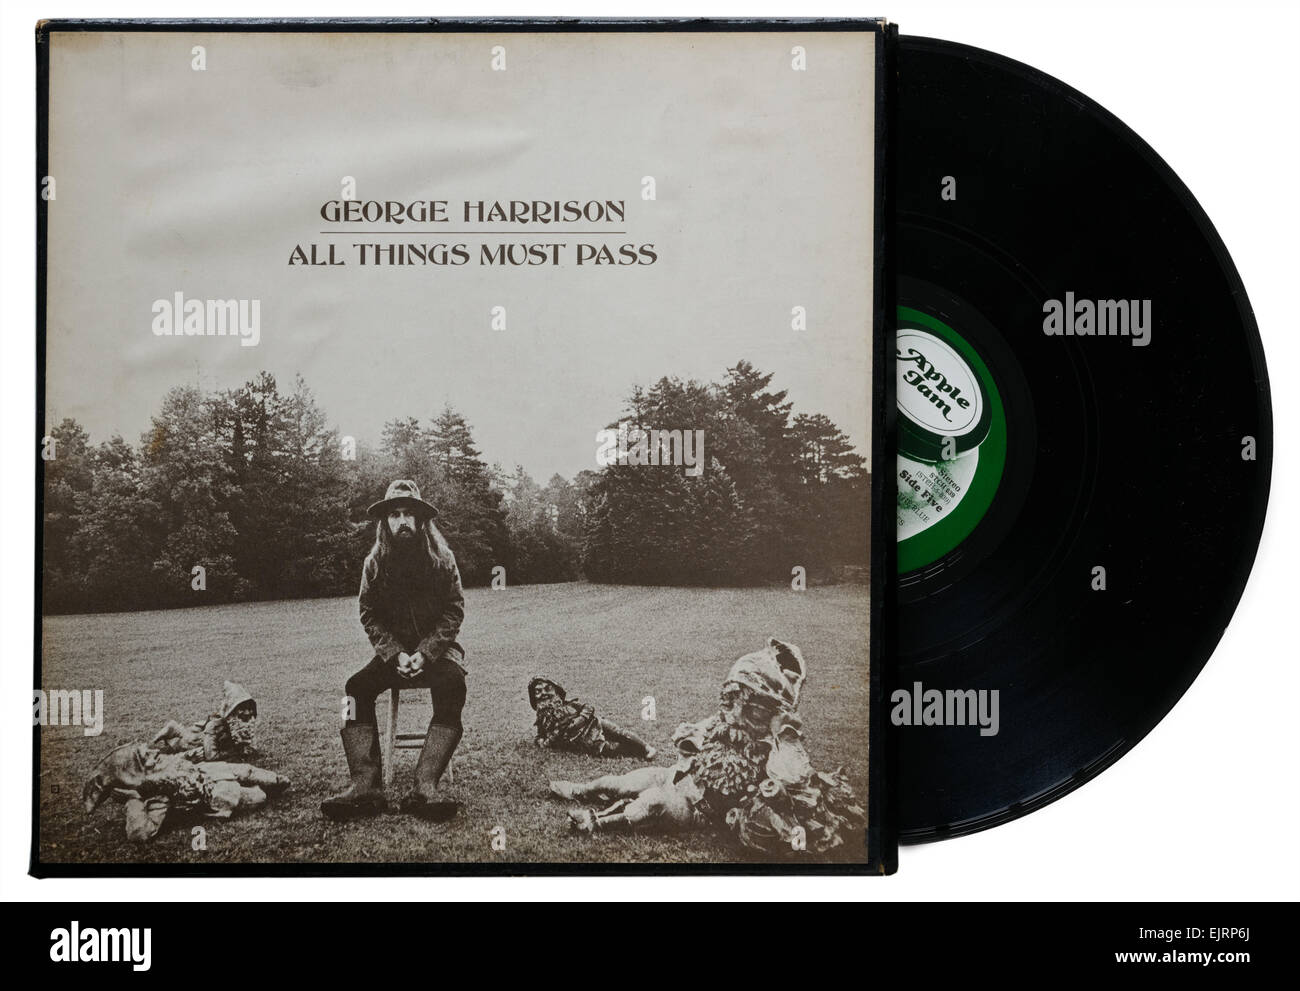 George Harrison album All Things Must Pass - Stock Image